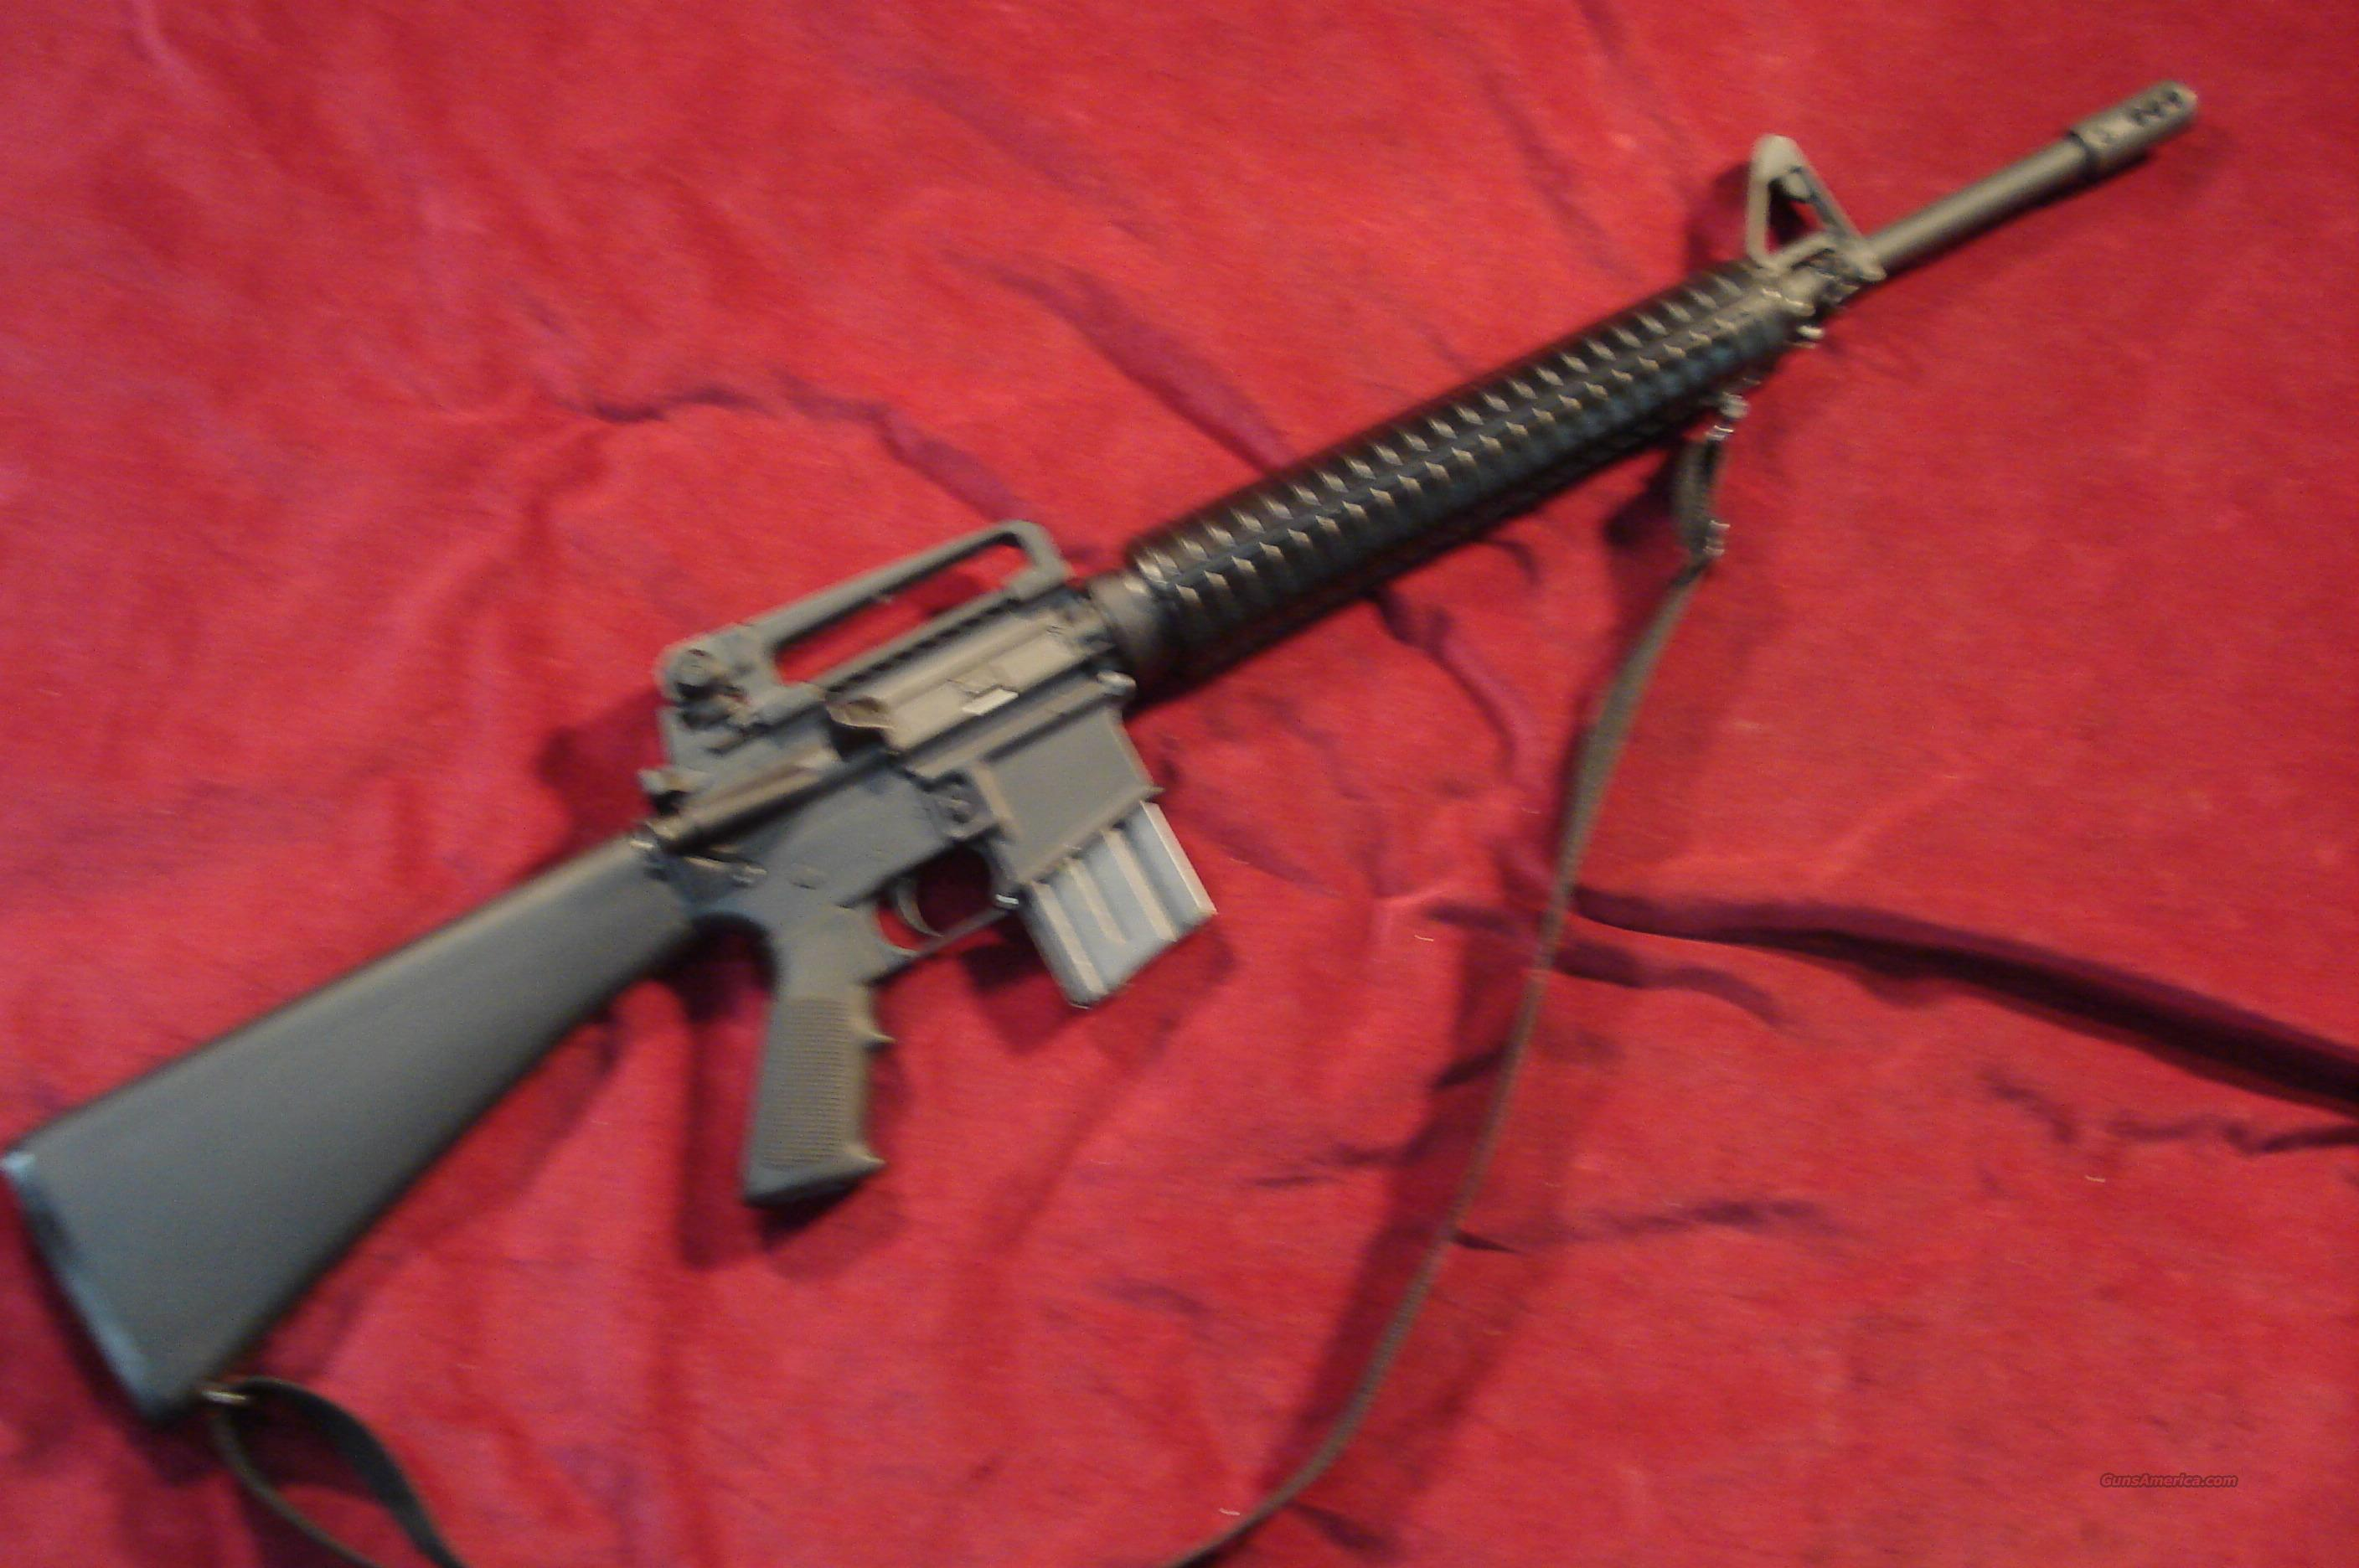 "COLT AR15 20"" HBAR  FLAT TOP 5.56/223CAL. USED (MT6700C)  Guns > Rifles > Colt Military/Tactical Rifles"